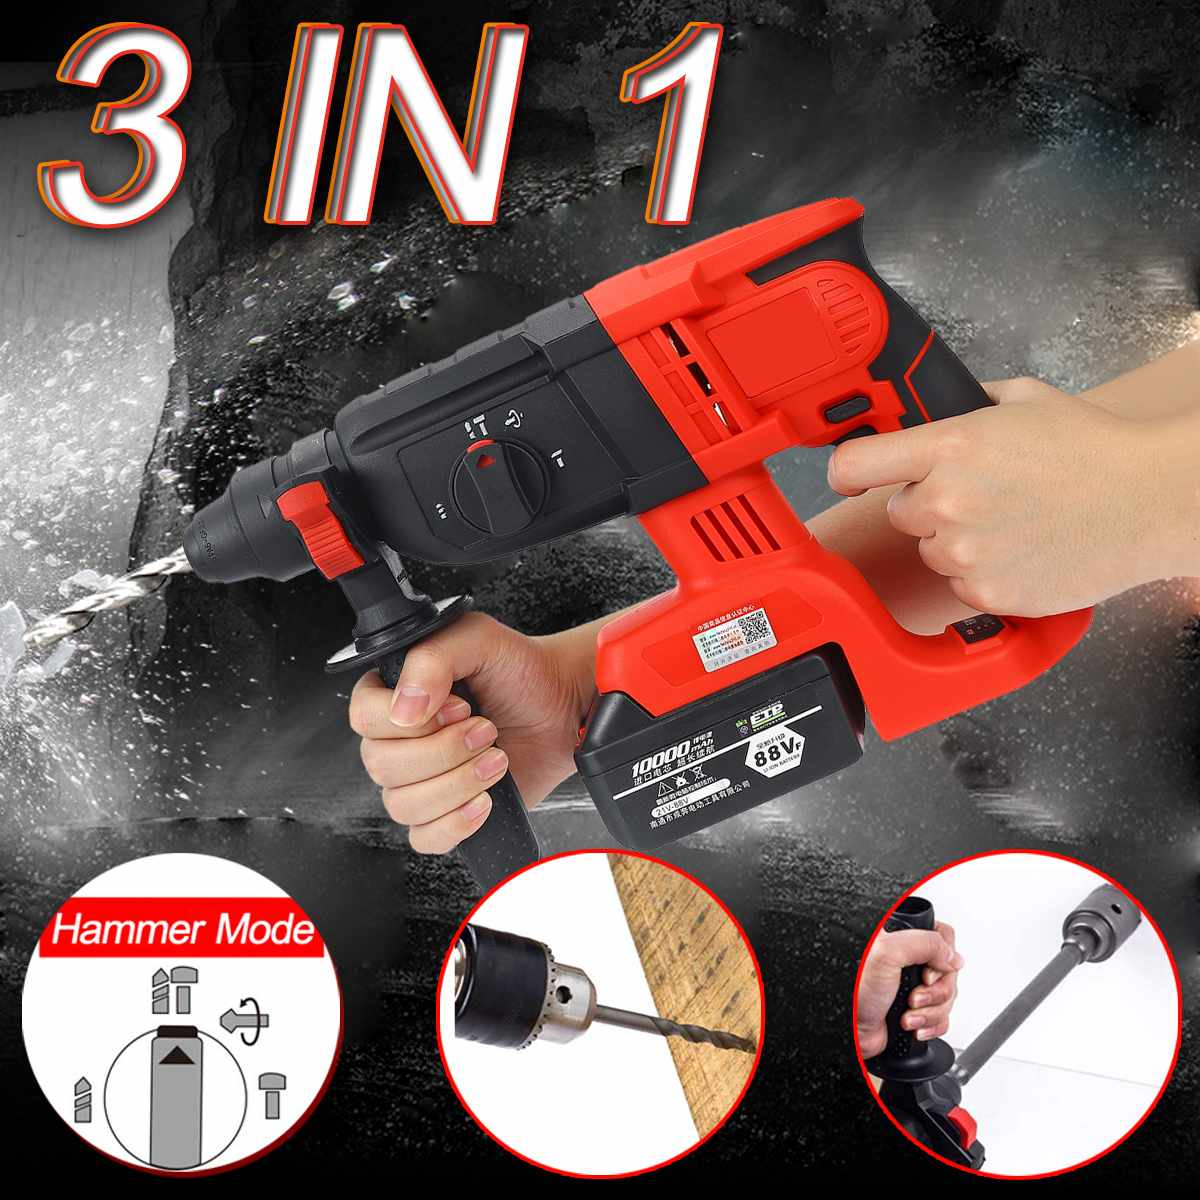 88V/128V/228V Multifunction Rechargeable 110-240V Electric Cordless Brushless Hammer Impact Power Drill With Lithium Battery